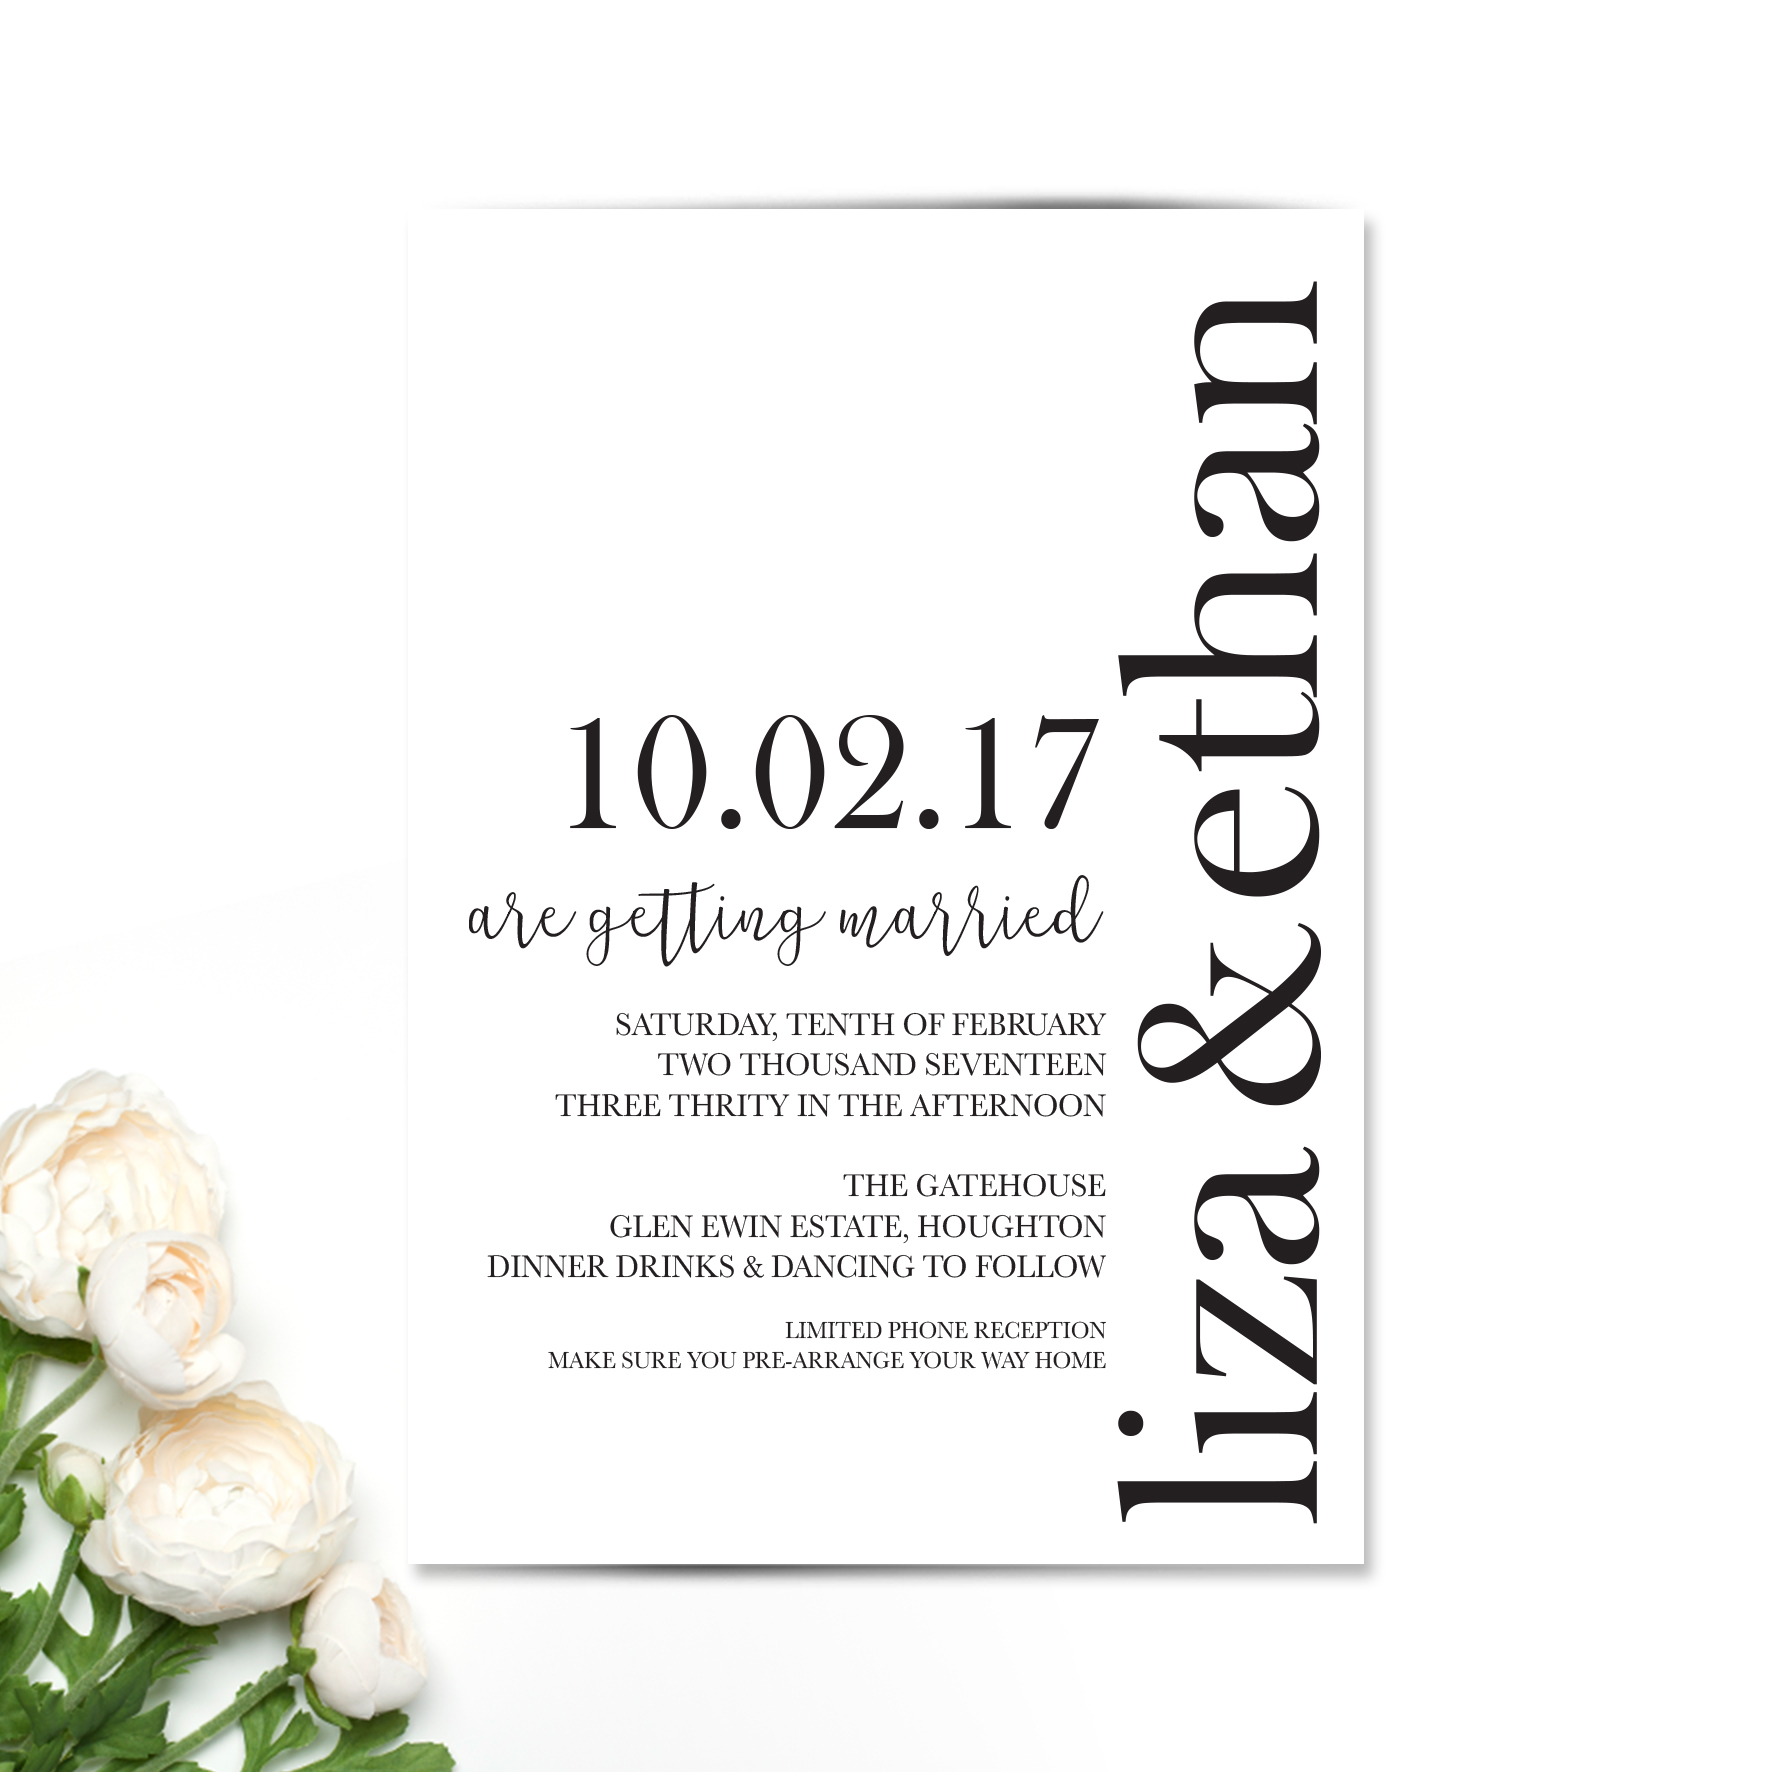 Liza Wedding Invitation